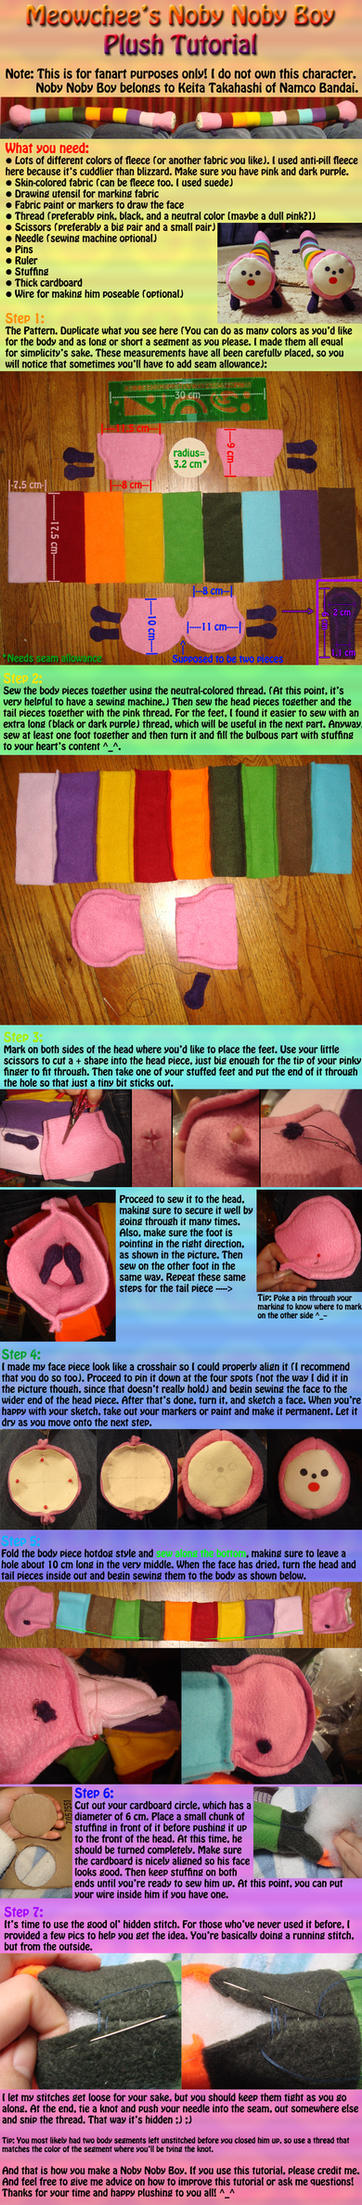 Noby Noby Boy Plush Tutorial by Meowchee